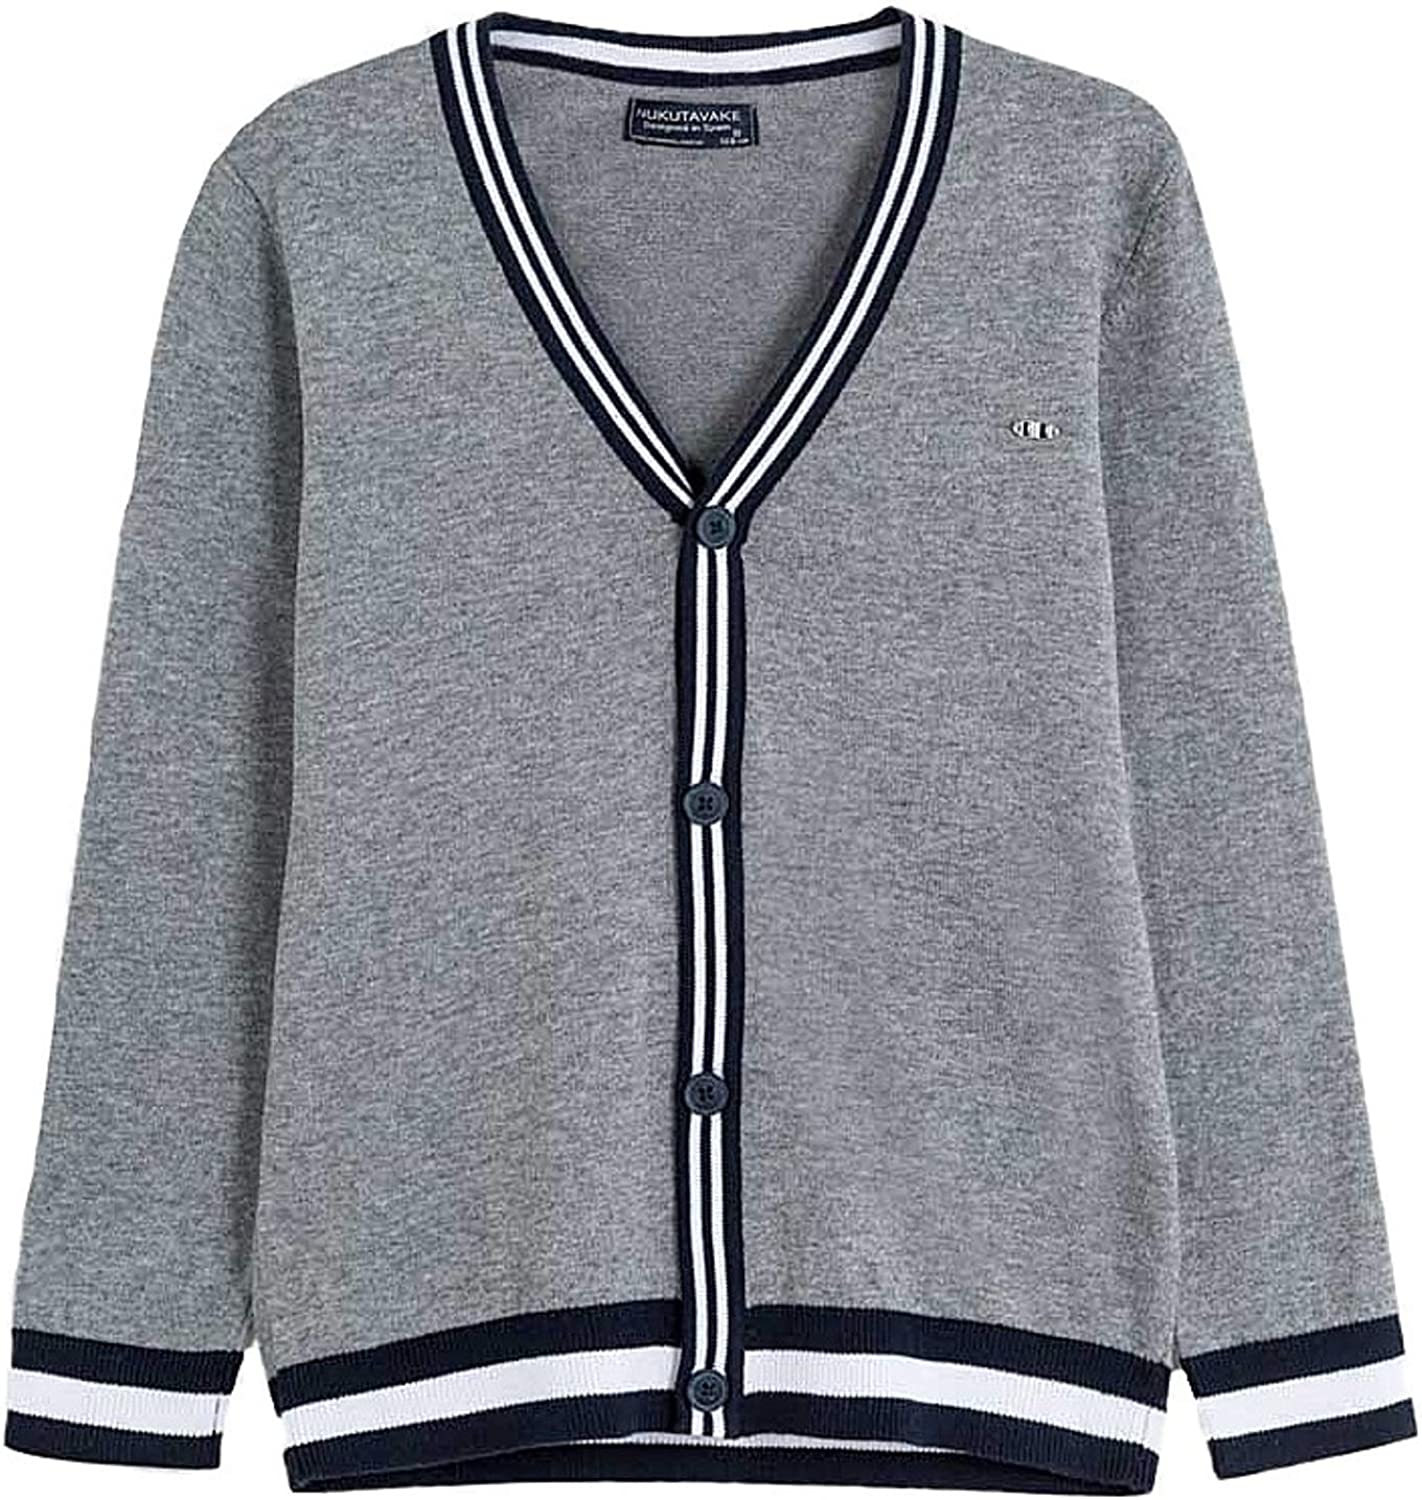 Mayoral - Knit Cardigan for Boys - 6311, BRG Cement